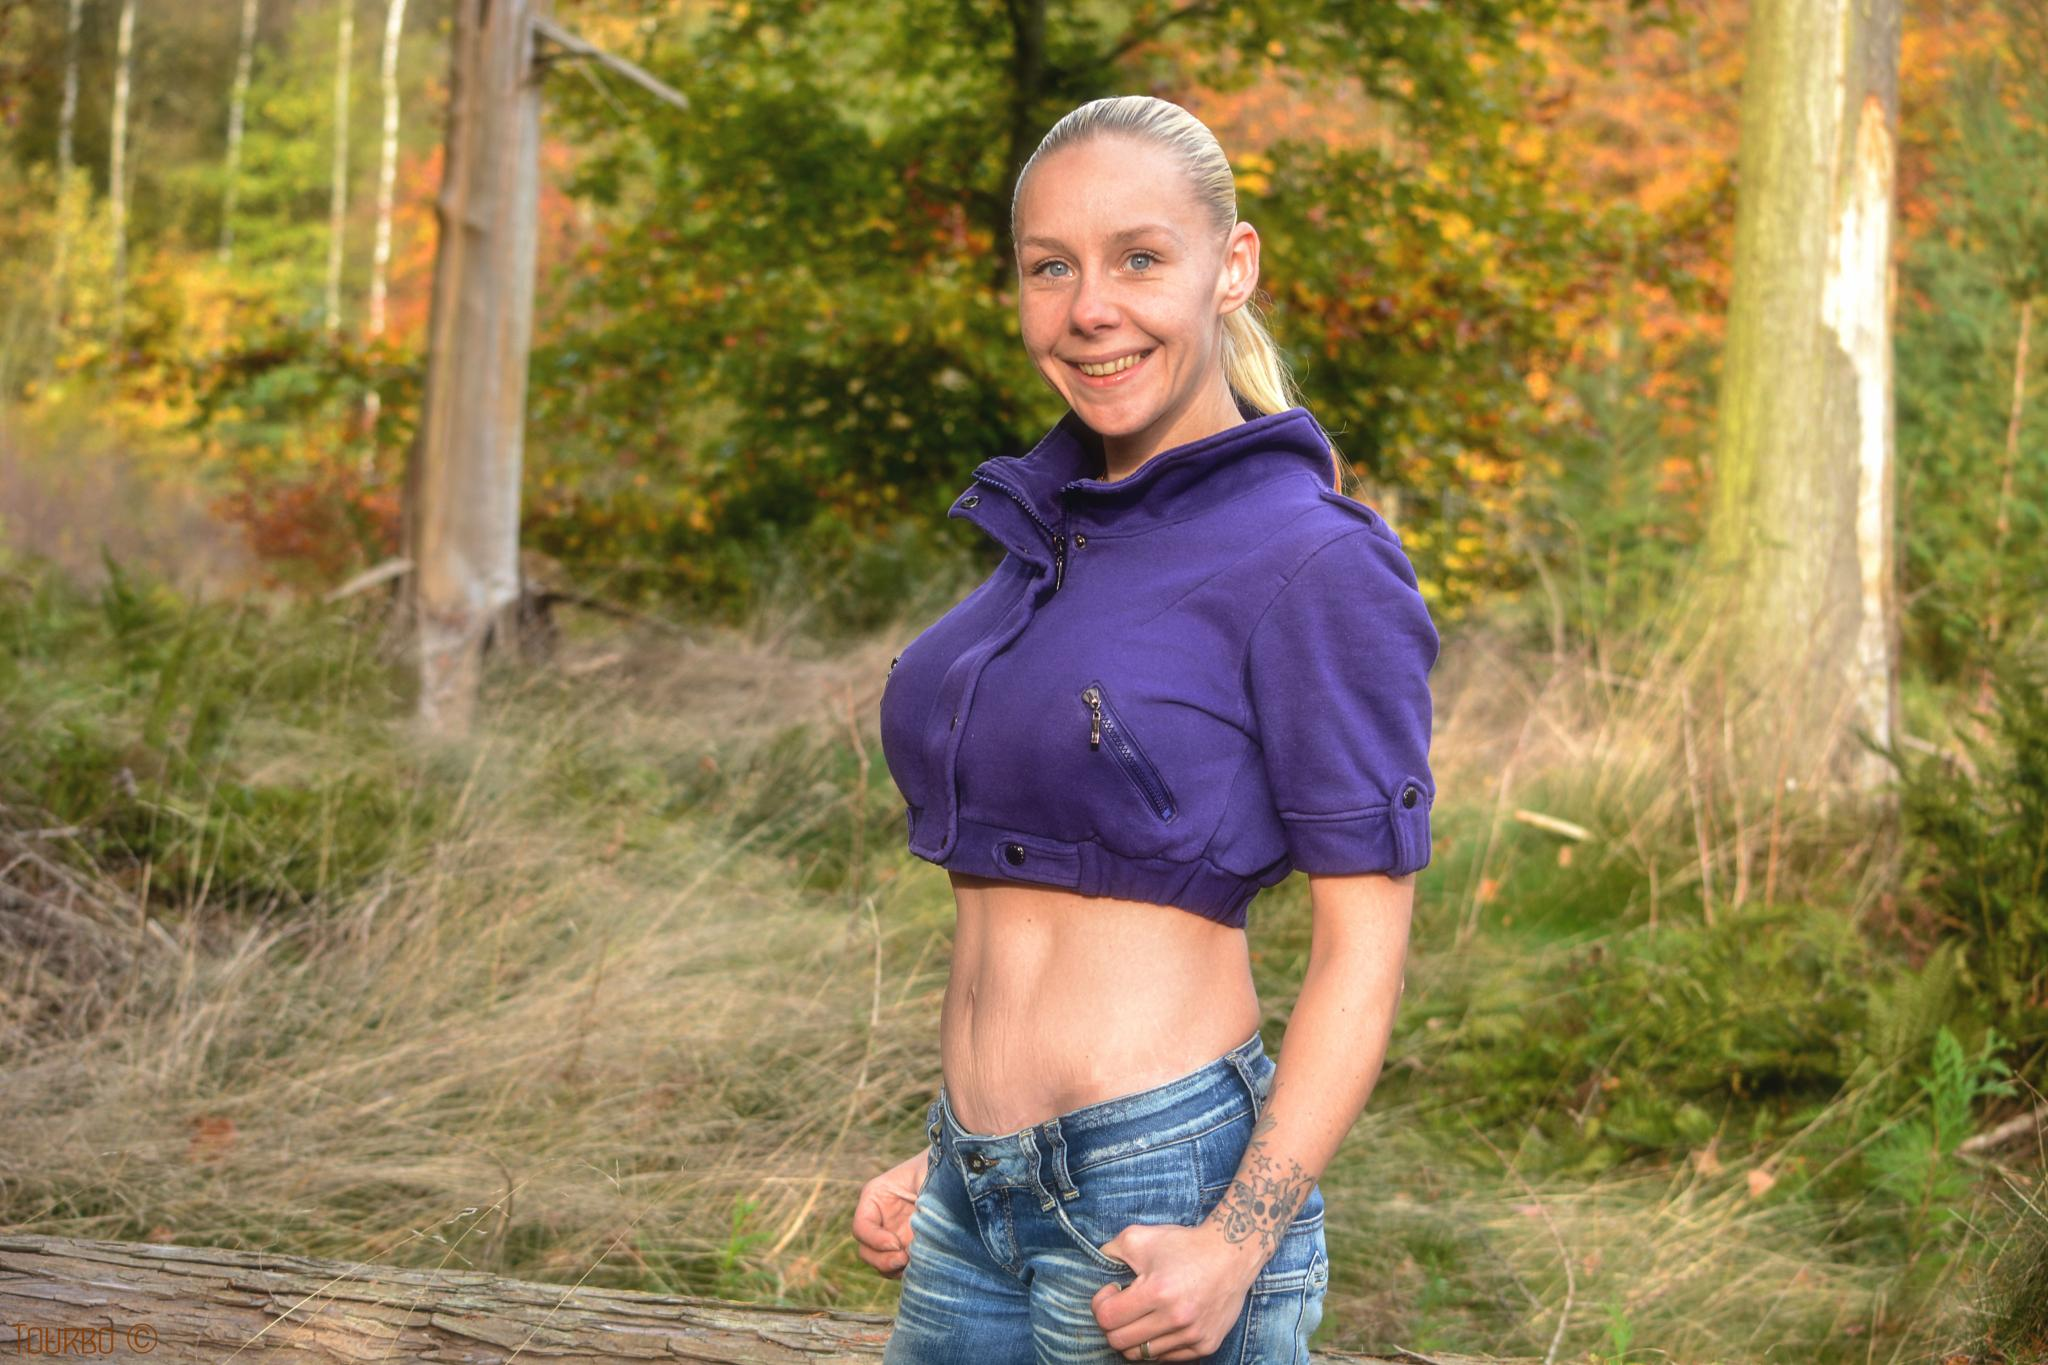 Photo in Random #tourbo #woman #forest #tree #trees #fall #autumn #grass #denmark #copenhagen #color #colors #jeans #stomach #mother #mom #tattoo